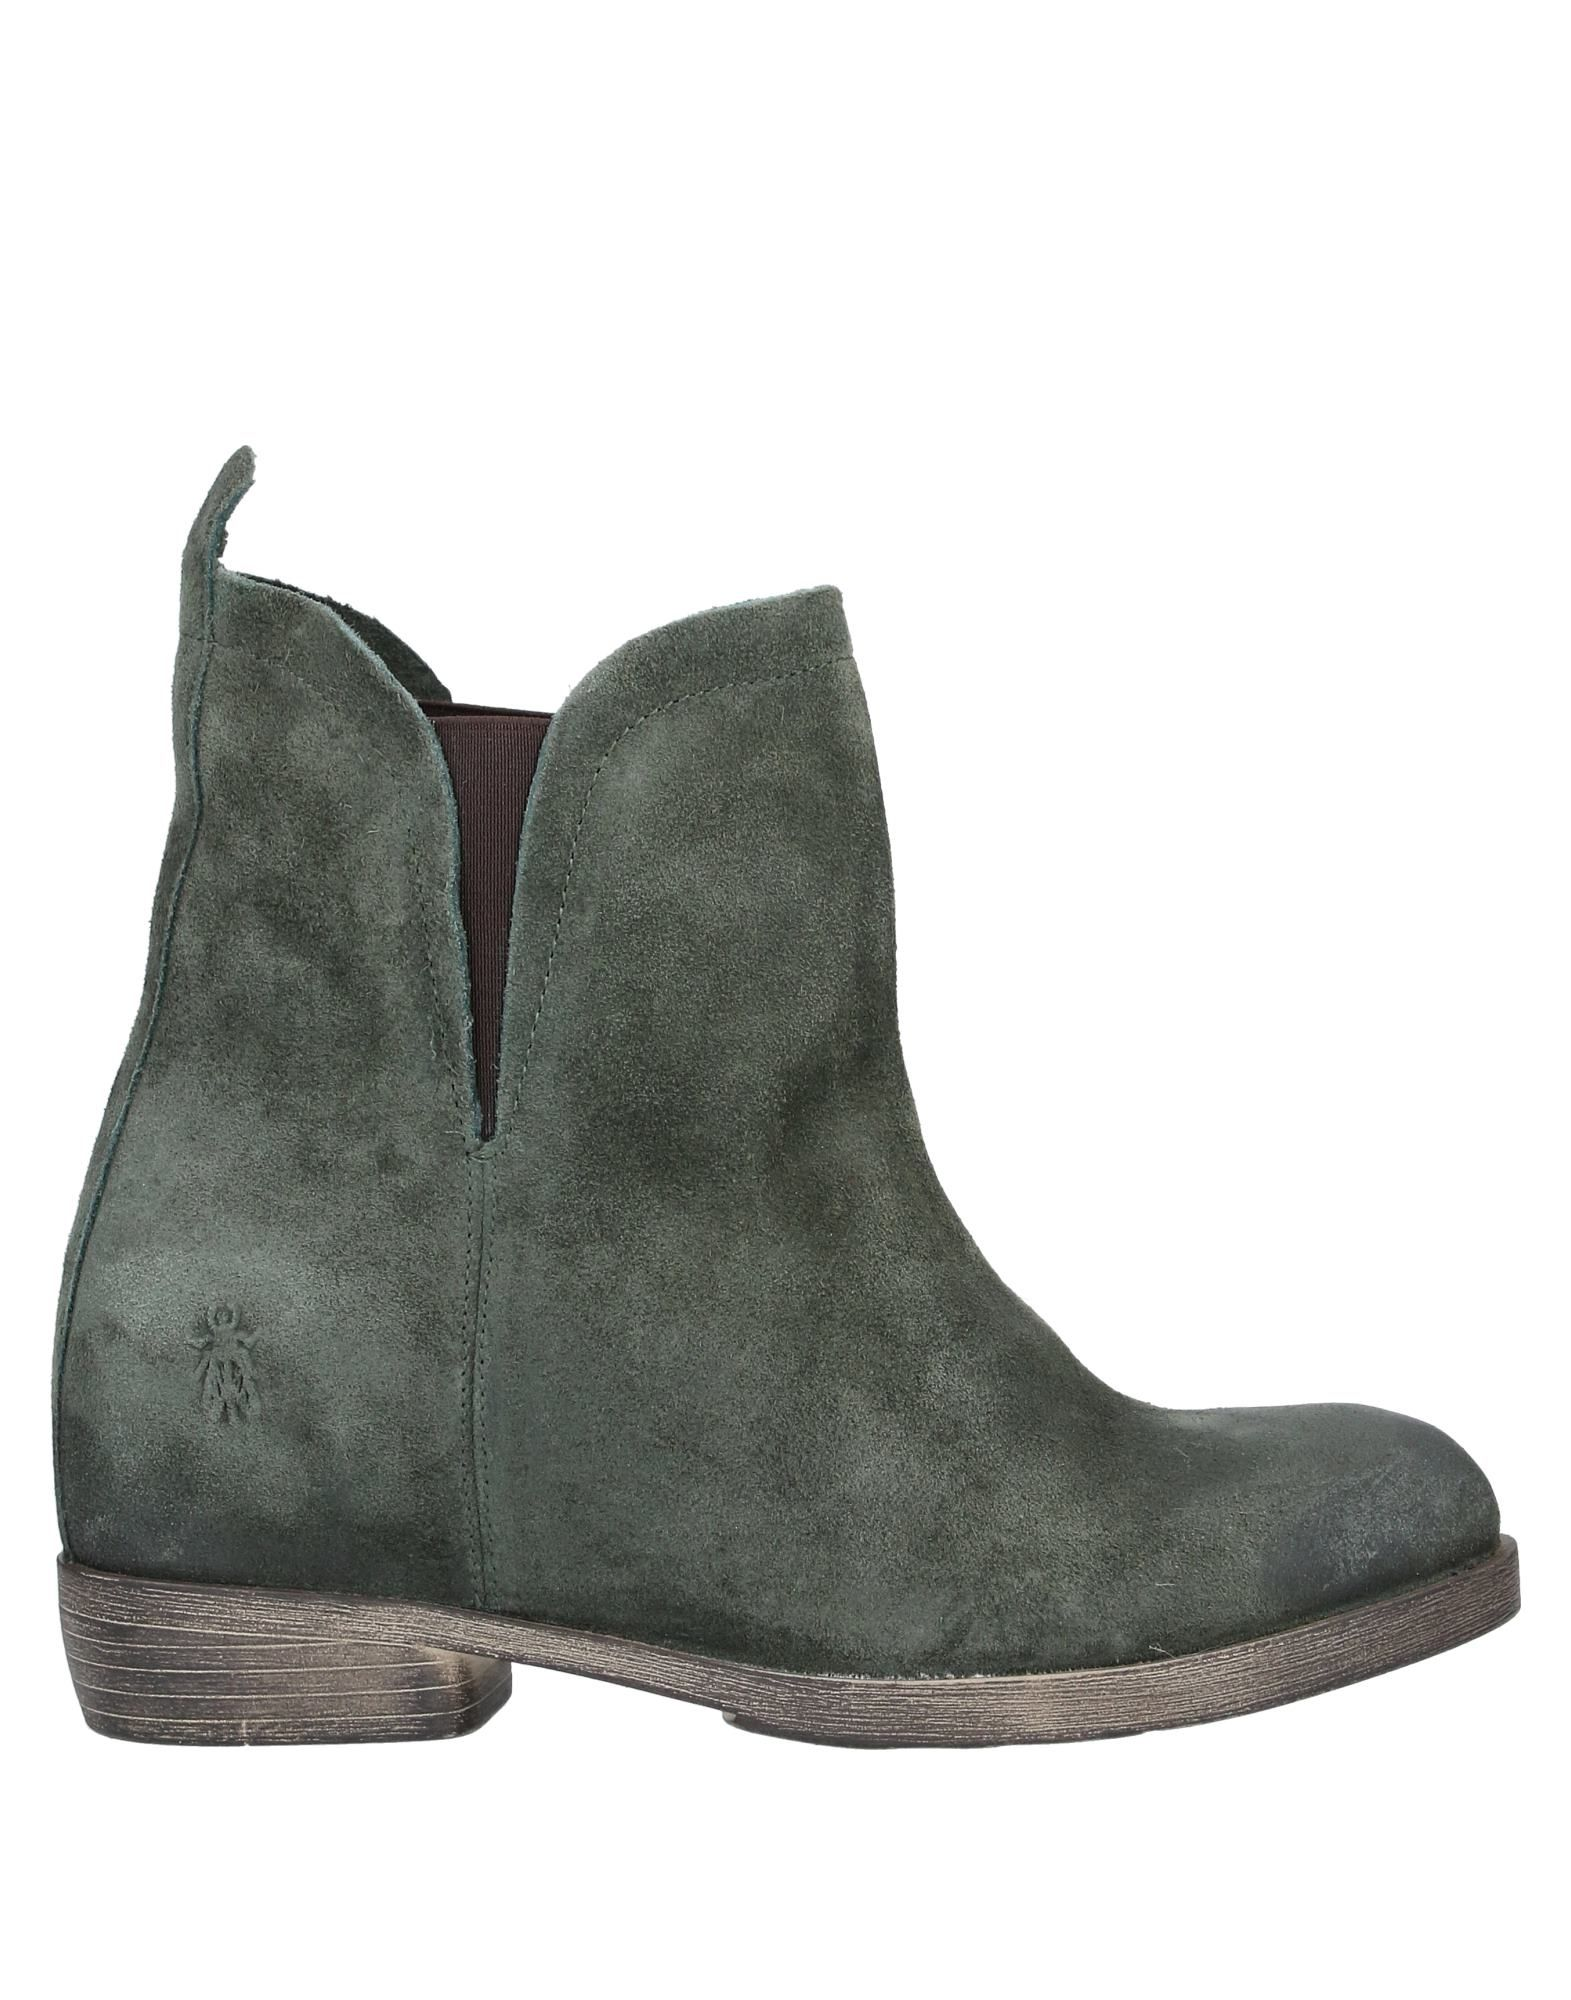 FLY LONDON Ankle boots. suede effect, logo, solid color, elasticized gores, round toeline, square heel, leather lining, rubber sole, contains non-textile parts of animal origin. Soft Leather